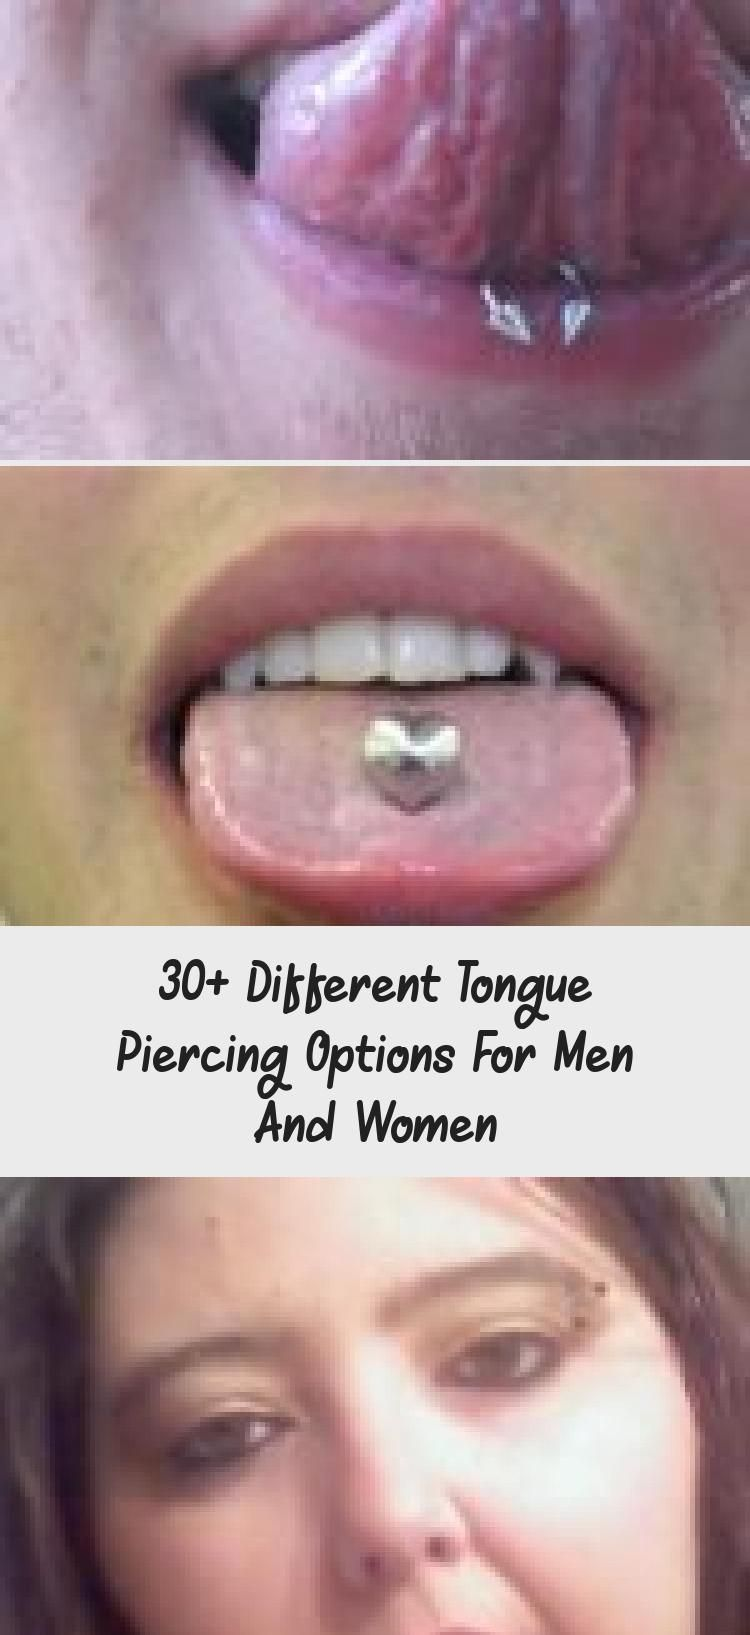 30+ different tongue piercing options for men and women - piercing - 30 ... -  30+ different tongue piercing options for men and women – piercing – 30+ different … – 30+  - #diyjewelrybox #glassesframes #Men #noisepiercing #options #piercing #Tongue #wirewrappedjewelry #Women